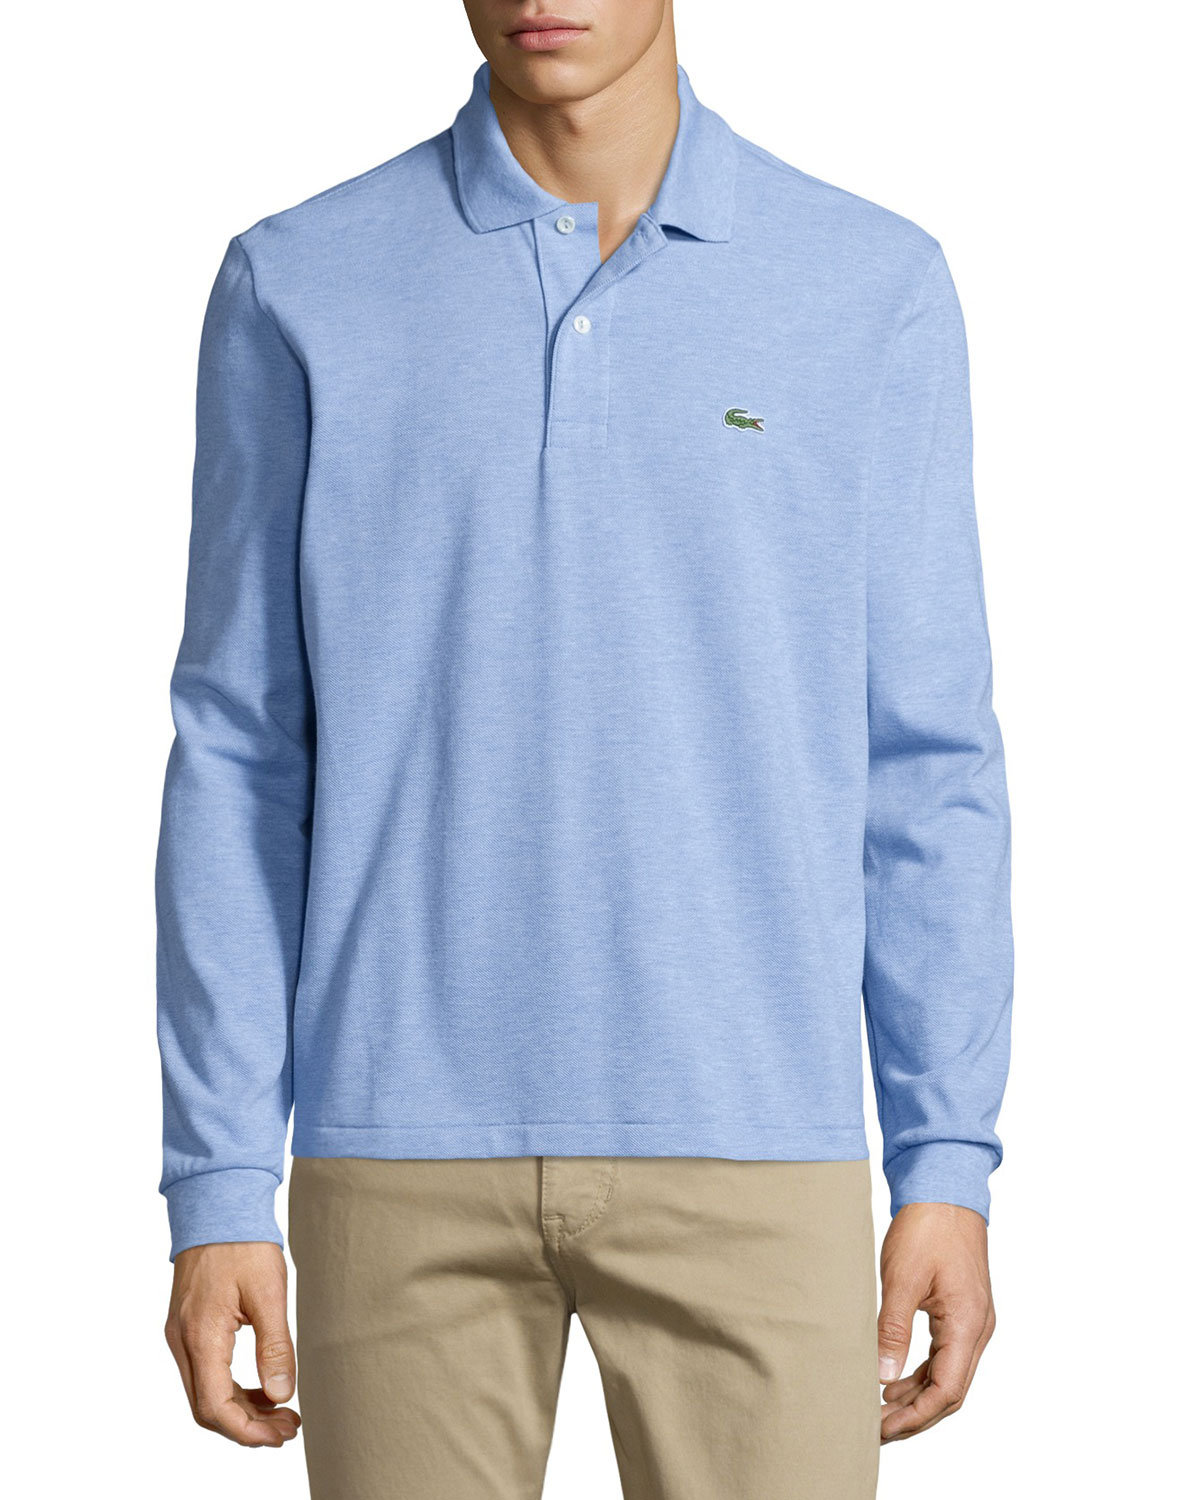 Lacoste Long Sleeve Cotton Shirt in Light Blue